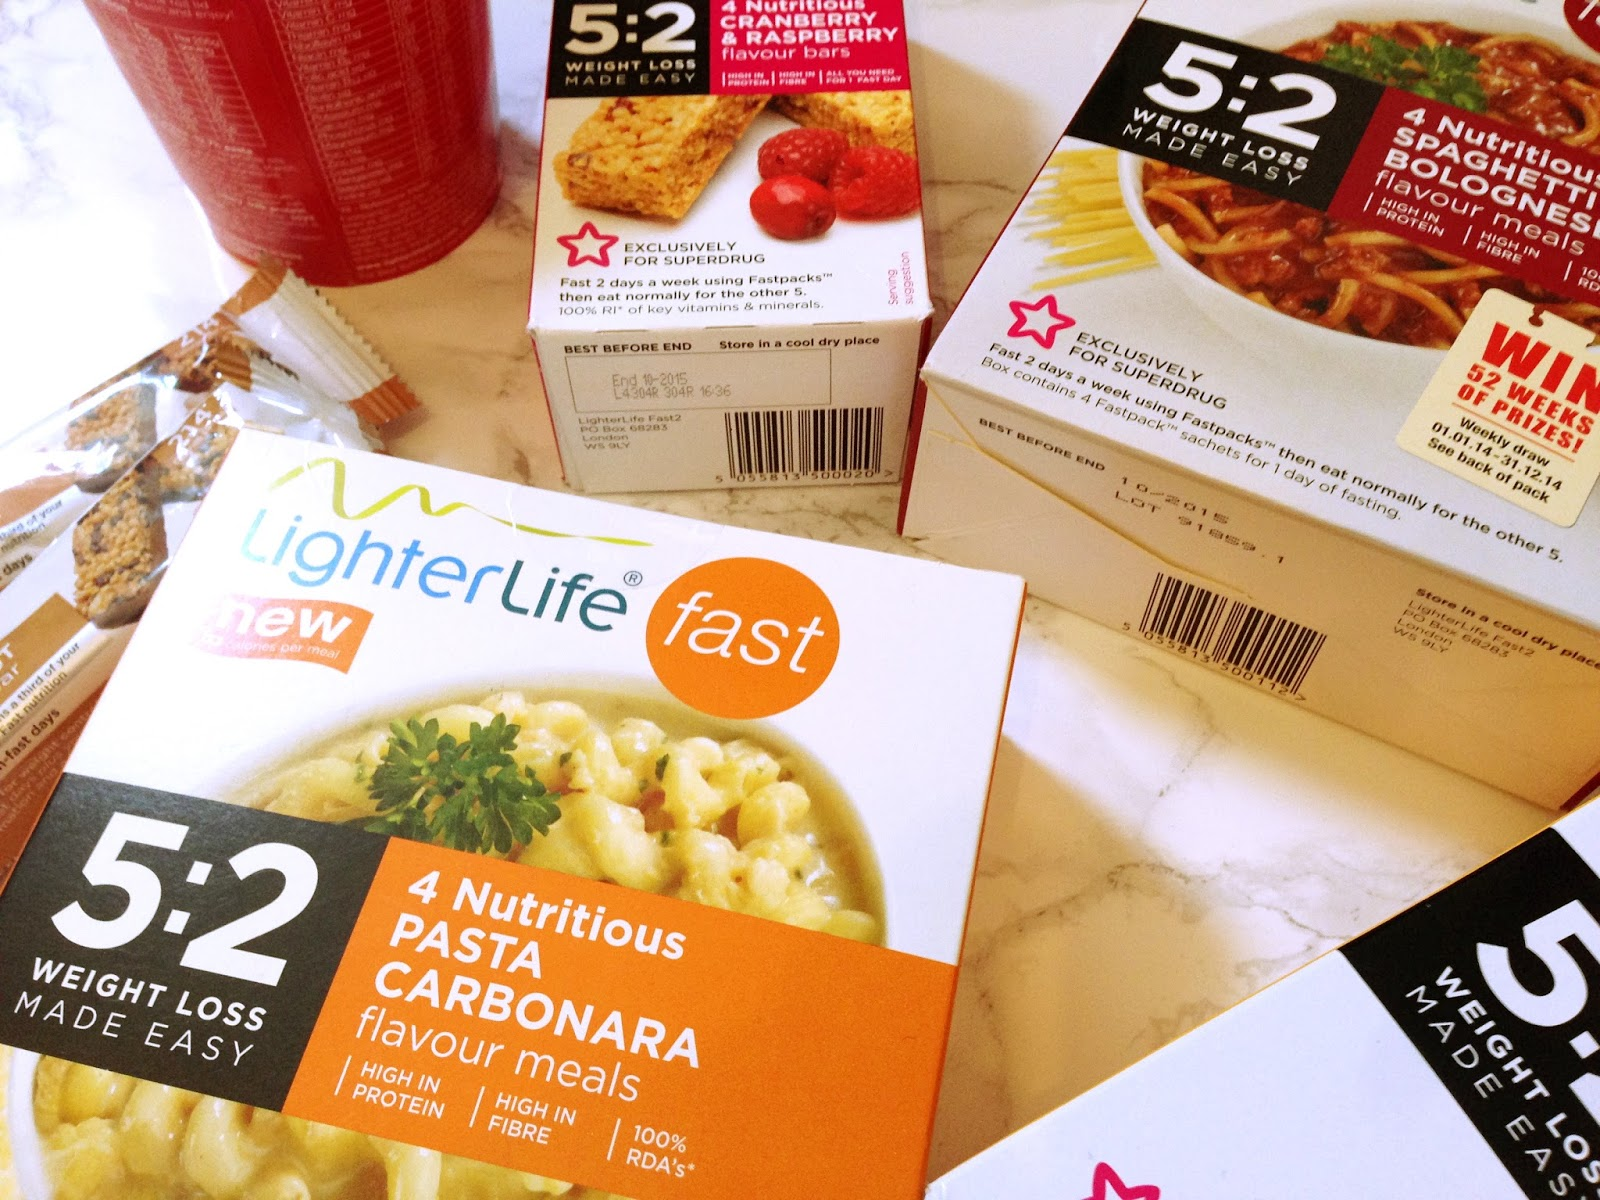 Lighter Life Fast Diet Review 5:2 Fasting